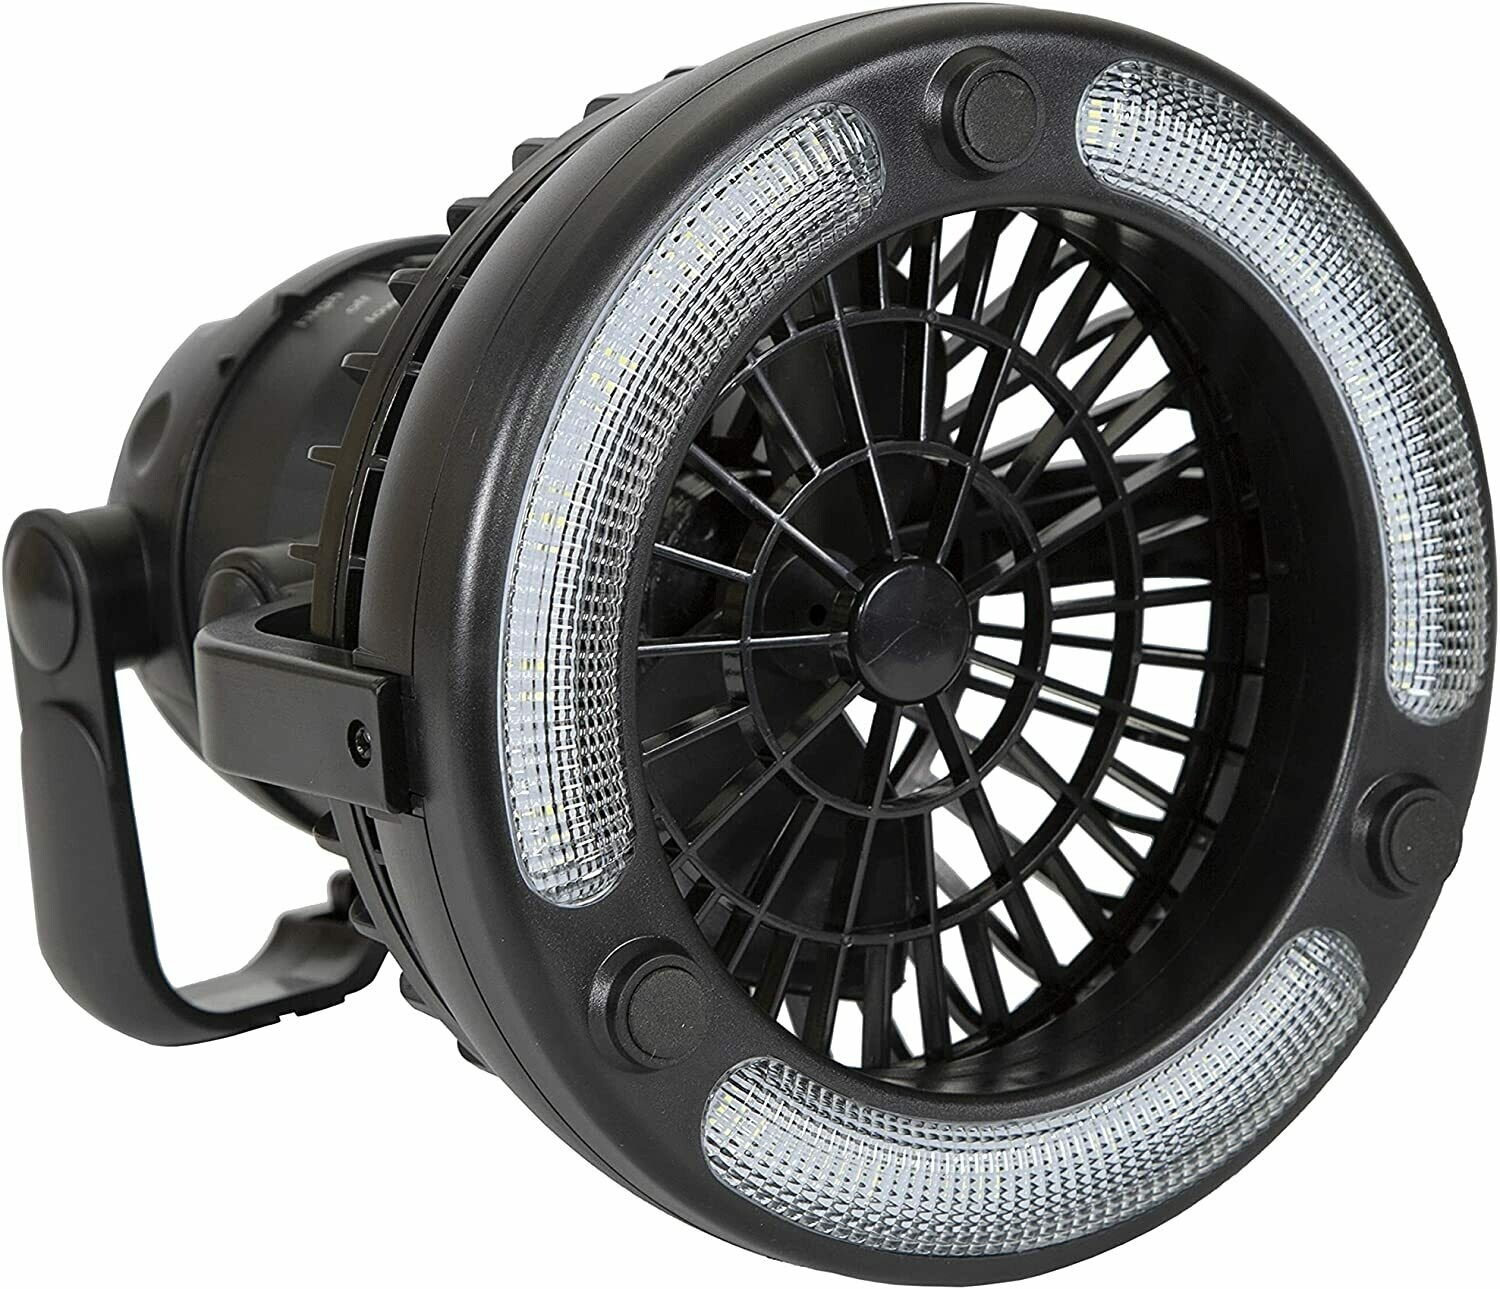 Stansport 450 Camping Lantern with Fan, 18 LED